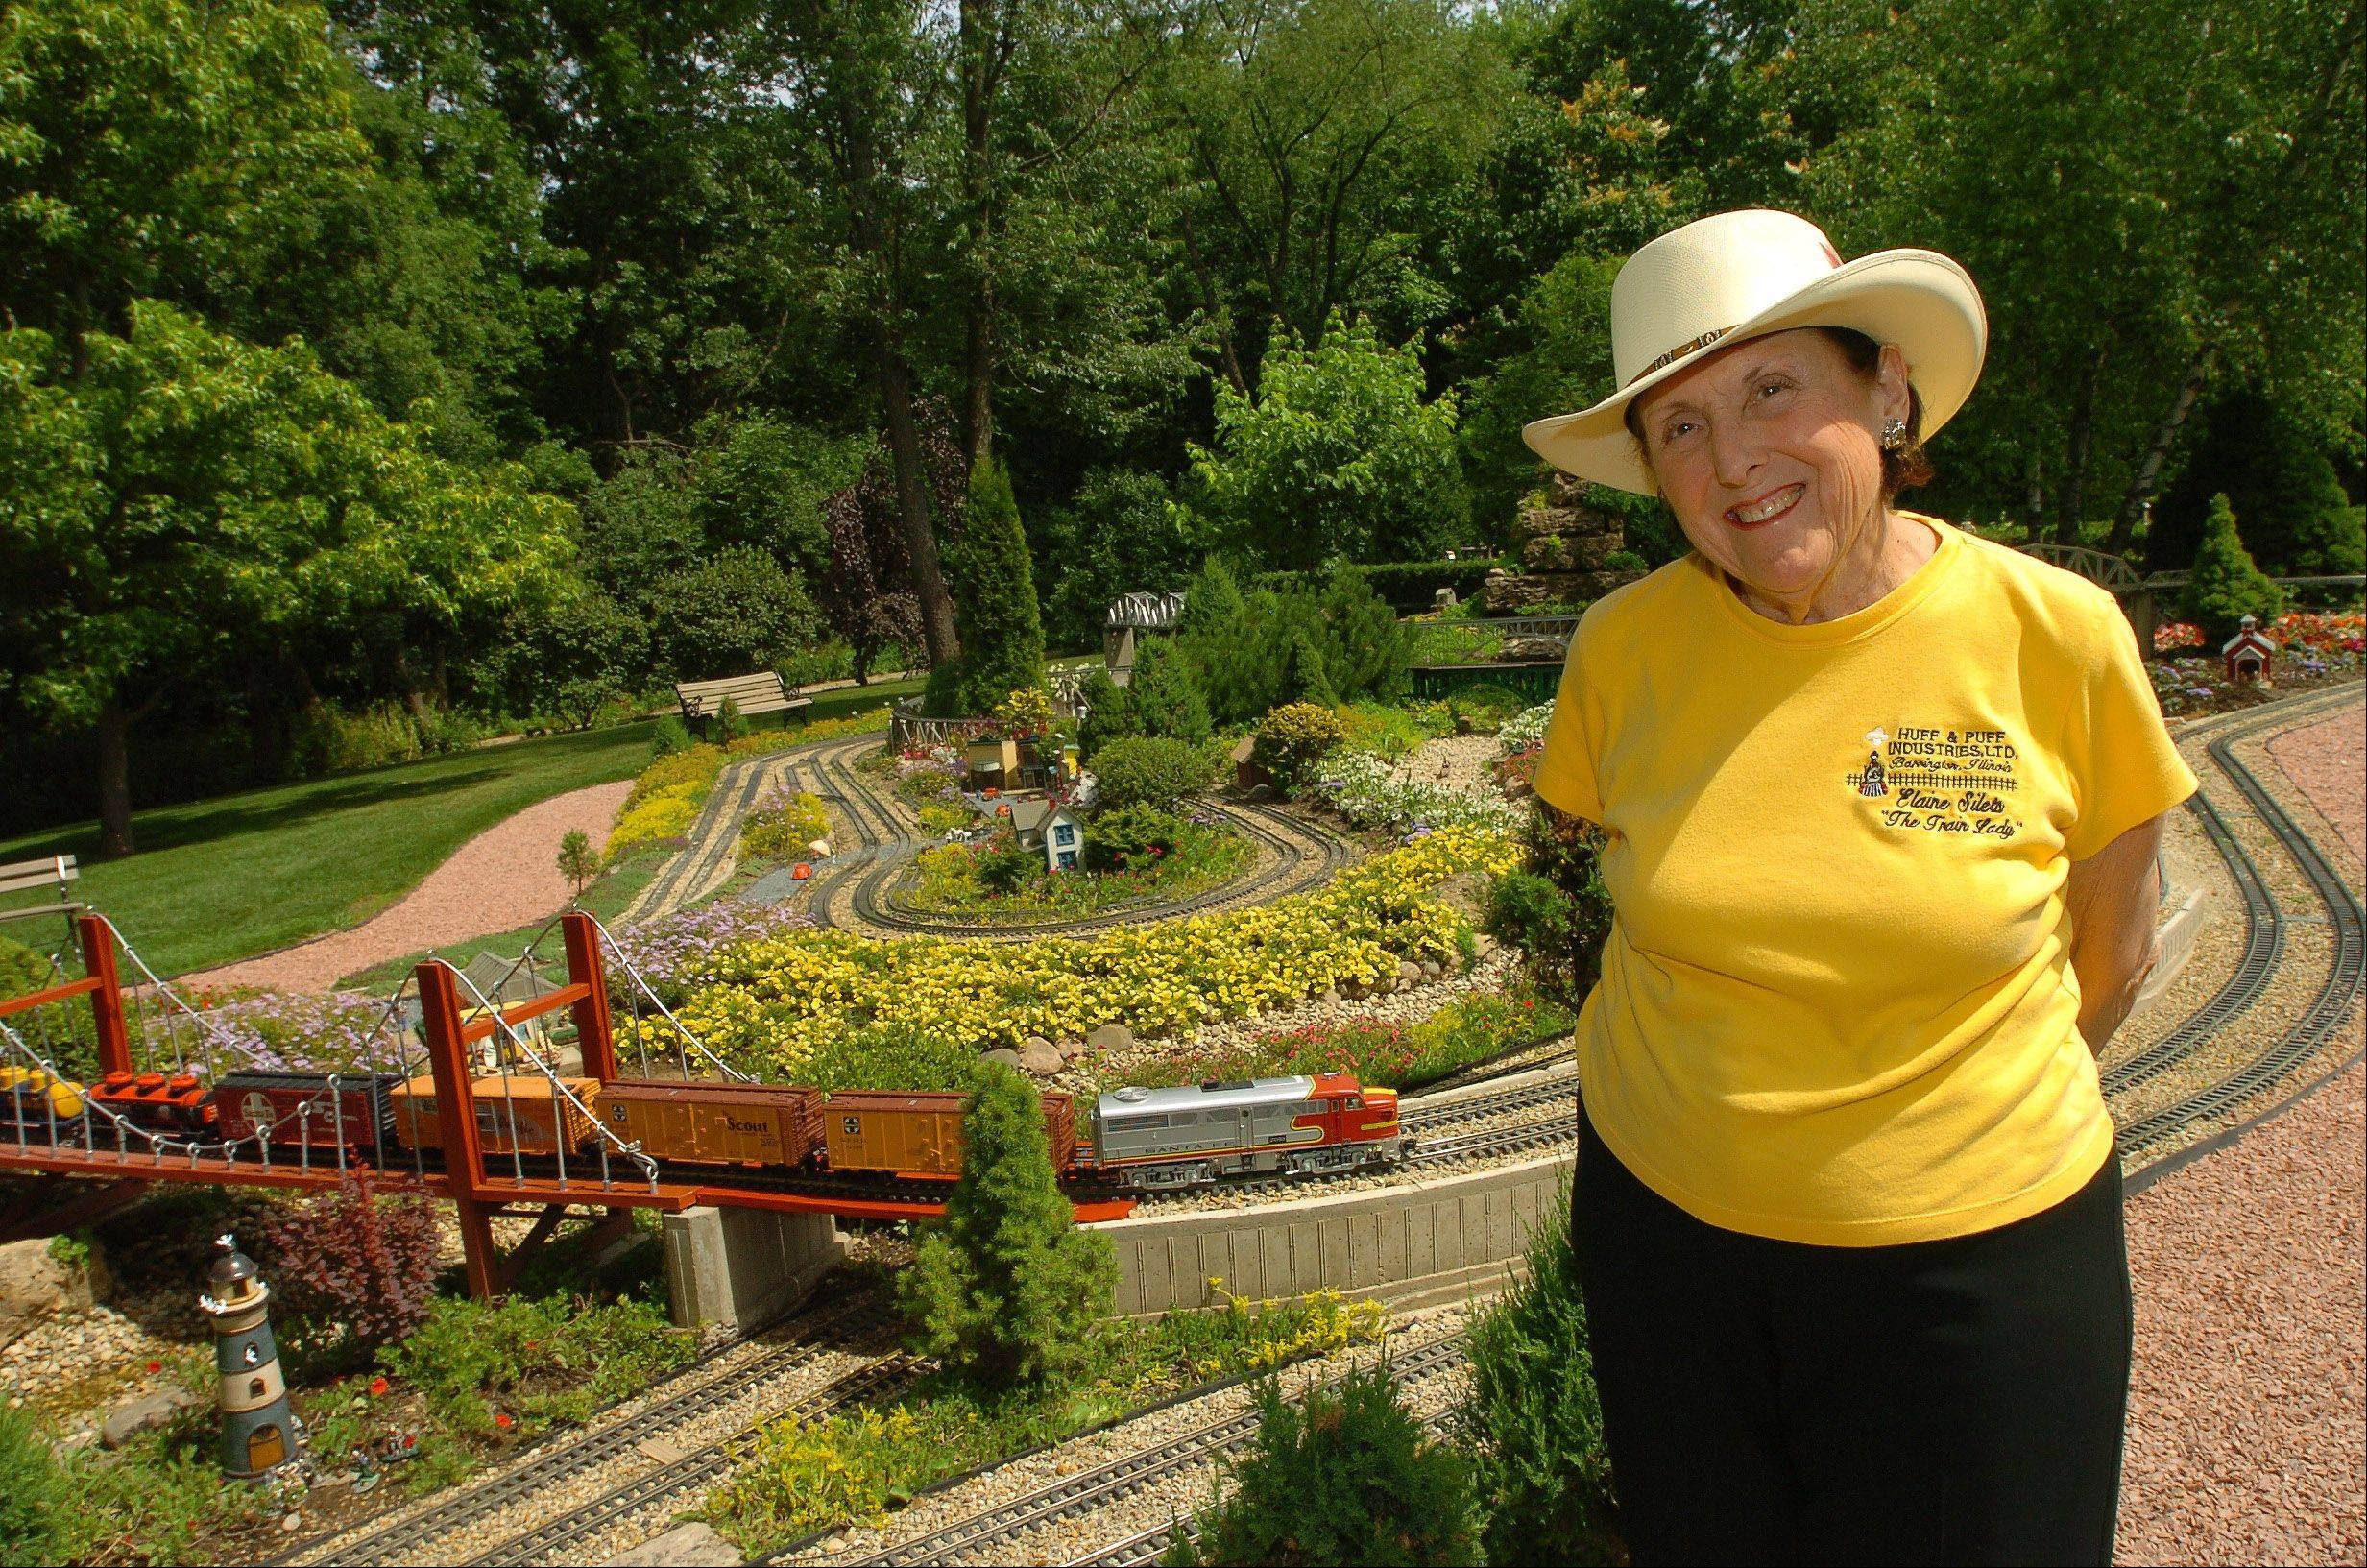 """Train Lady"" Elaine Silets and her private model railroad gardens and museum will be open to the public June 23. The rare public showing is a fundraiser for a scholarship fund created in honor of Silets' late husband, attorney Harvey M. Silets."